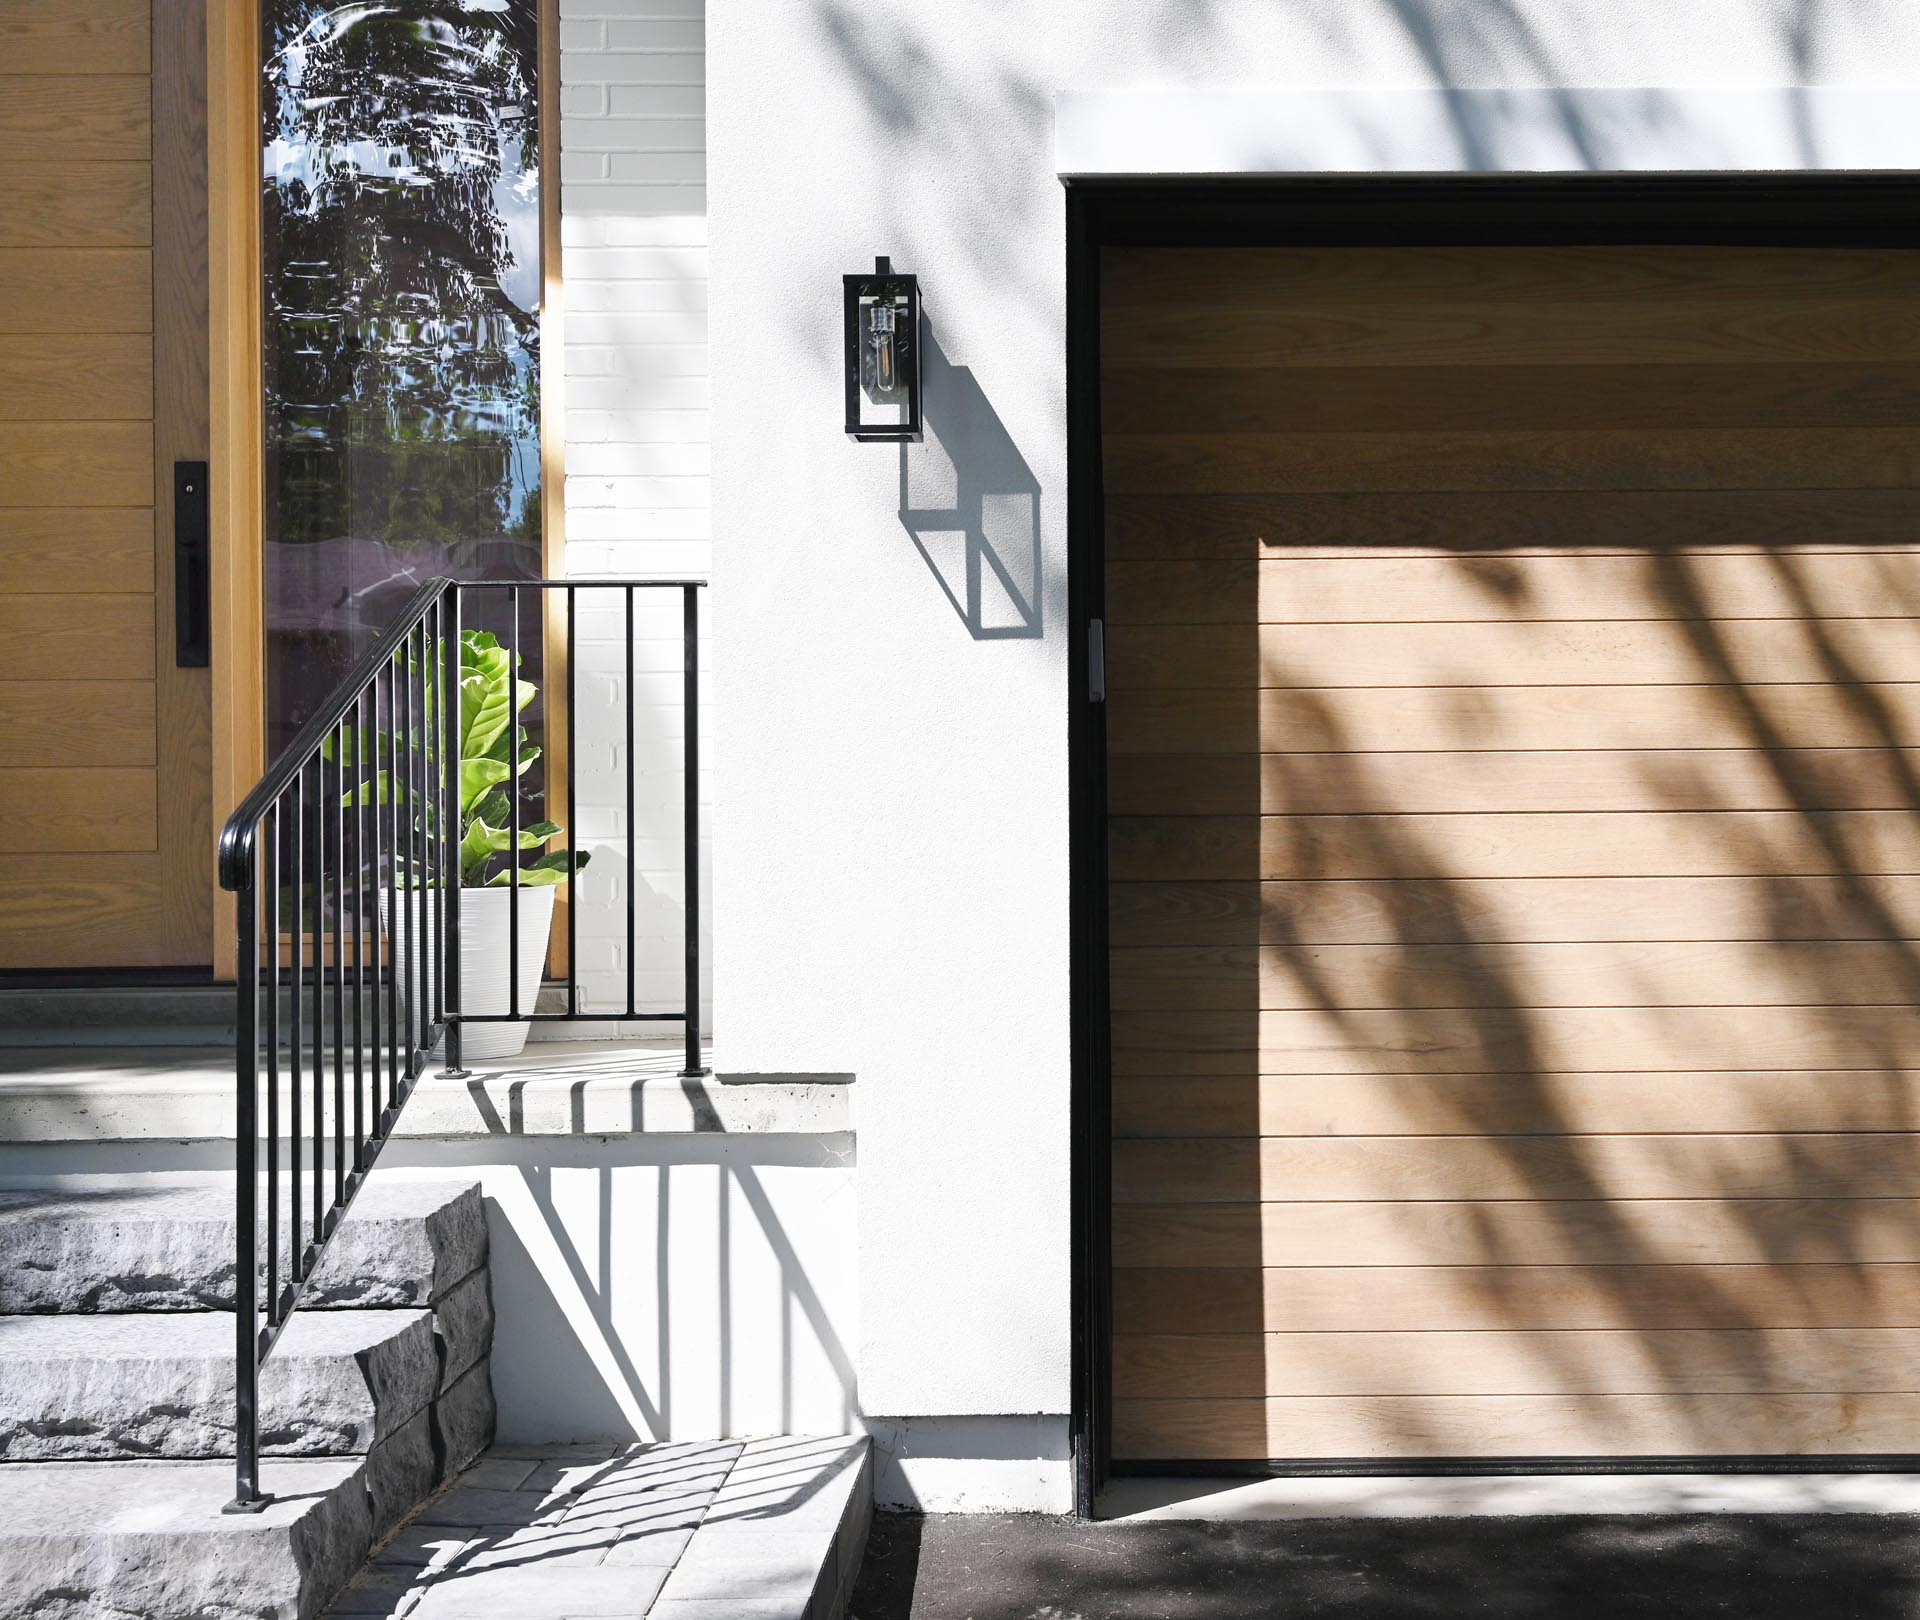 This contemporary home was inspired by farmhouse living, with the white exterior accented by natural white oak wood to add a warm welcome and a hint at what lies beyond.